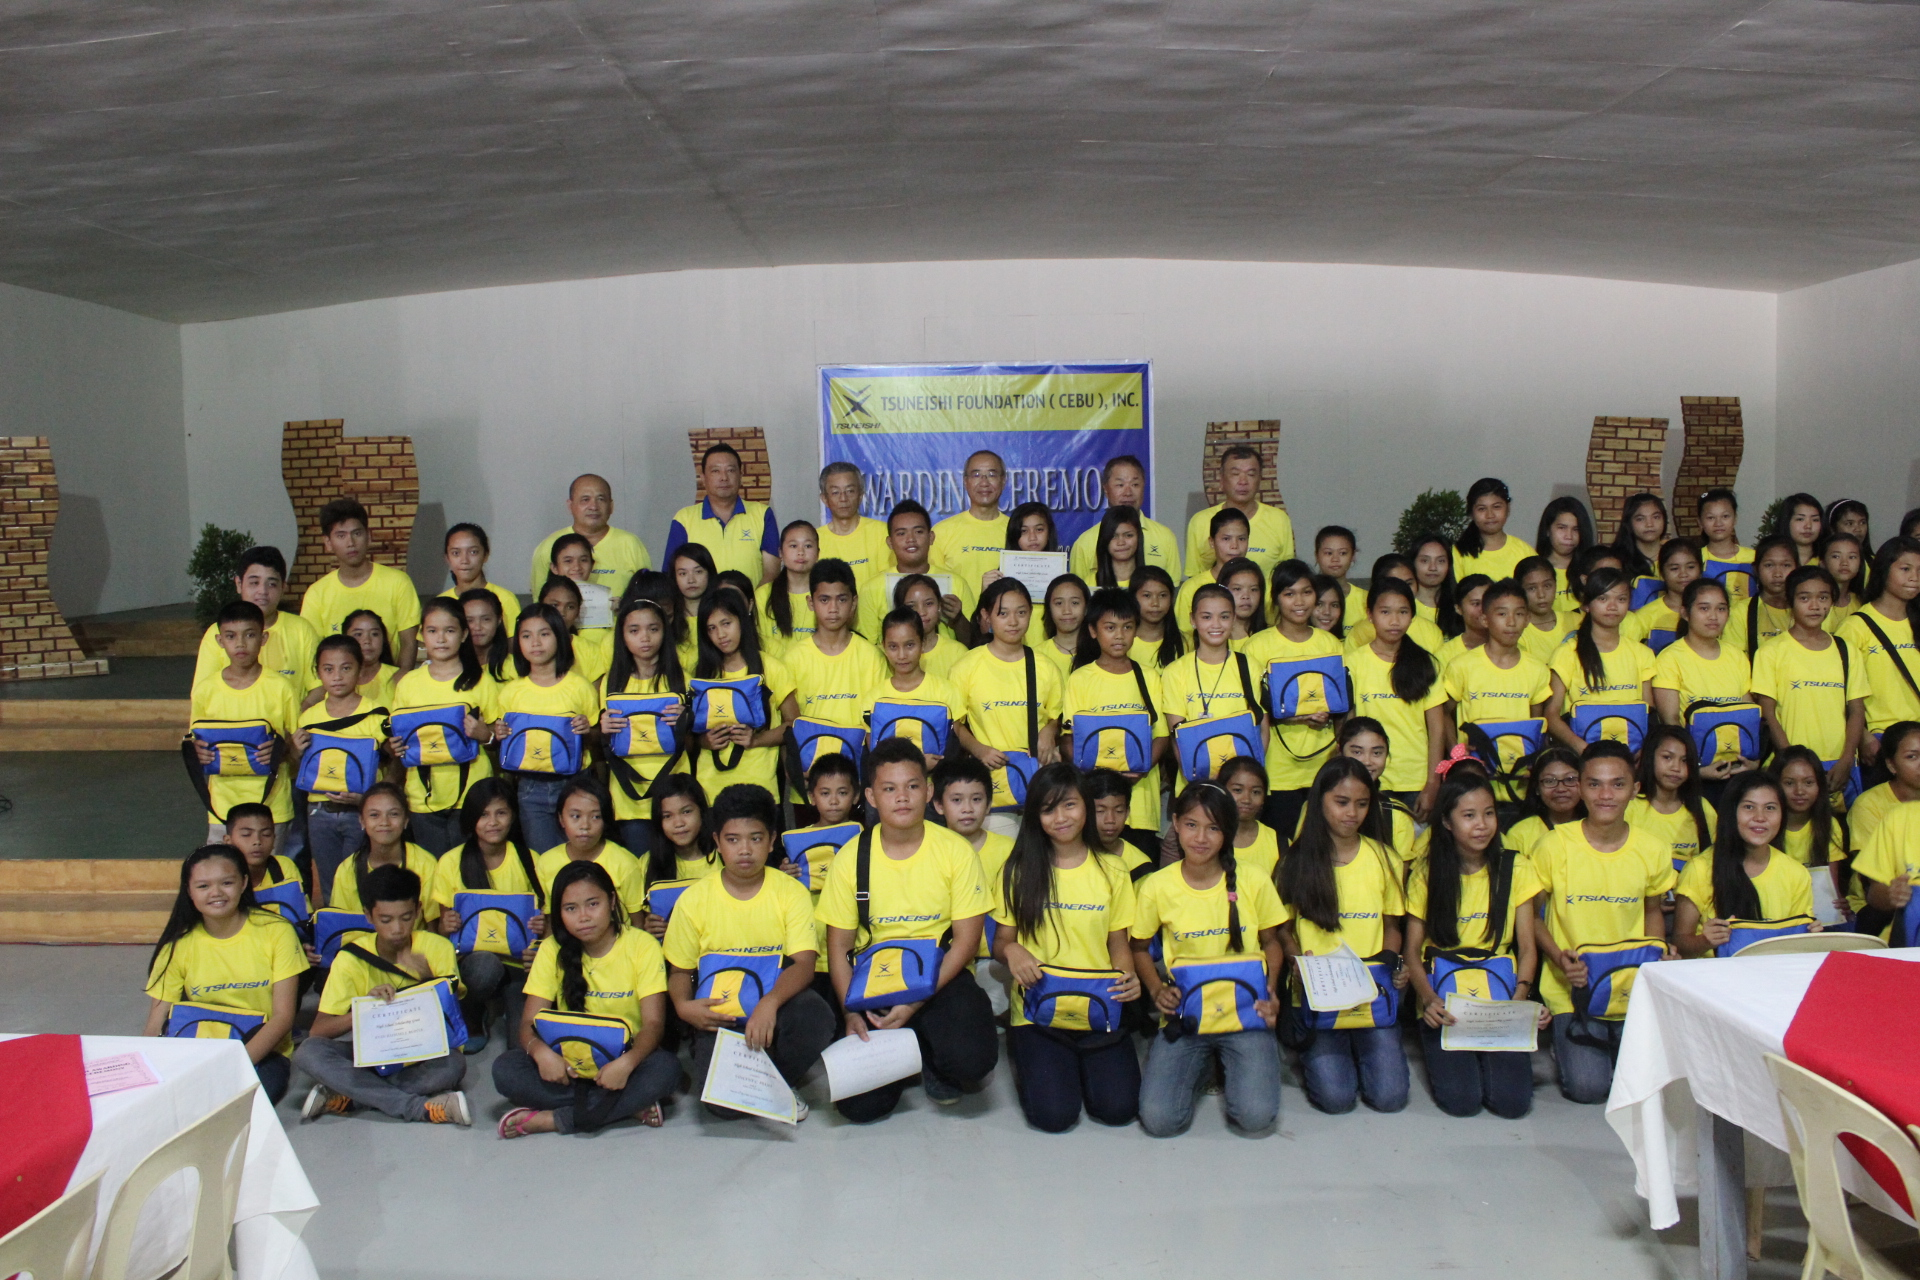 TSUNEISHI FOUNDATION (CEBU), INC. welcomes 102 candidates for high school scholarship and 30 candidates got the chance